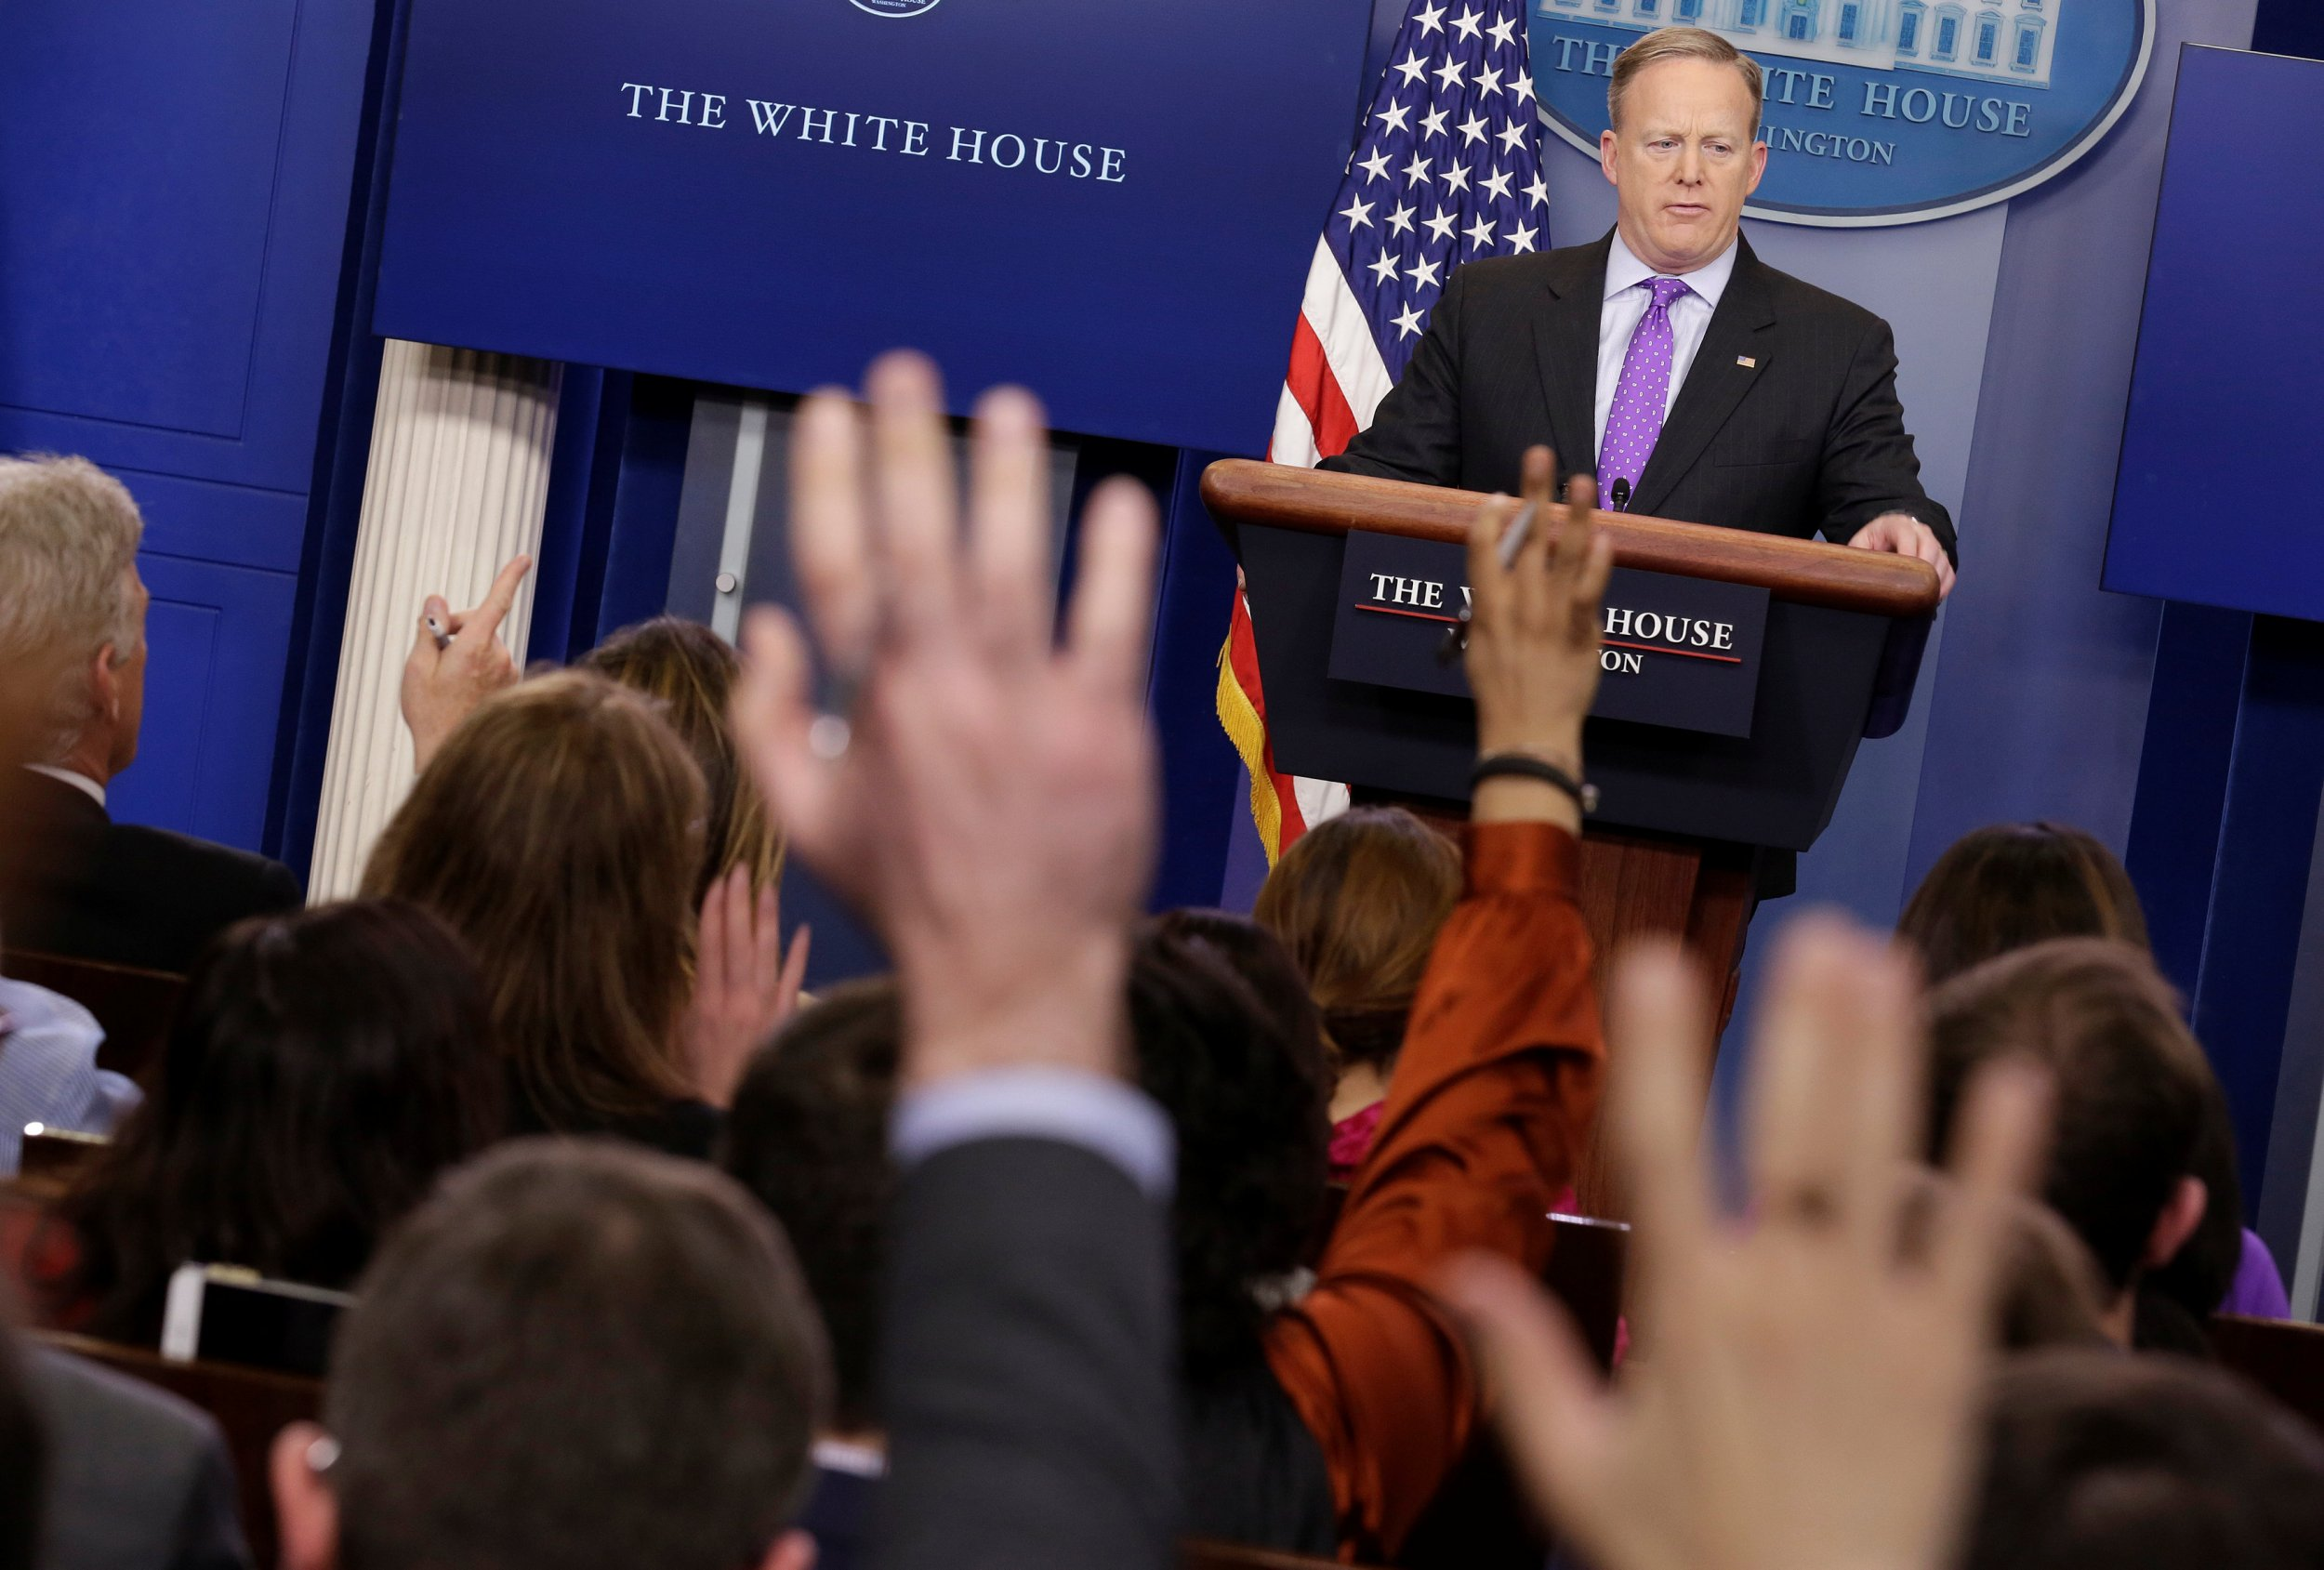 White House Daily Press Briefing, February 9